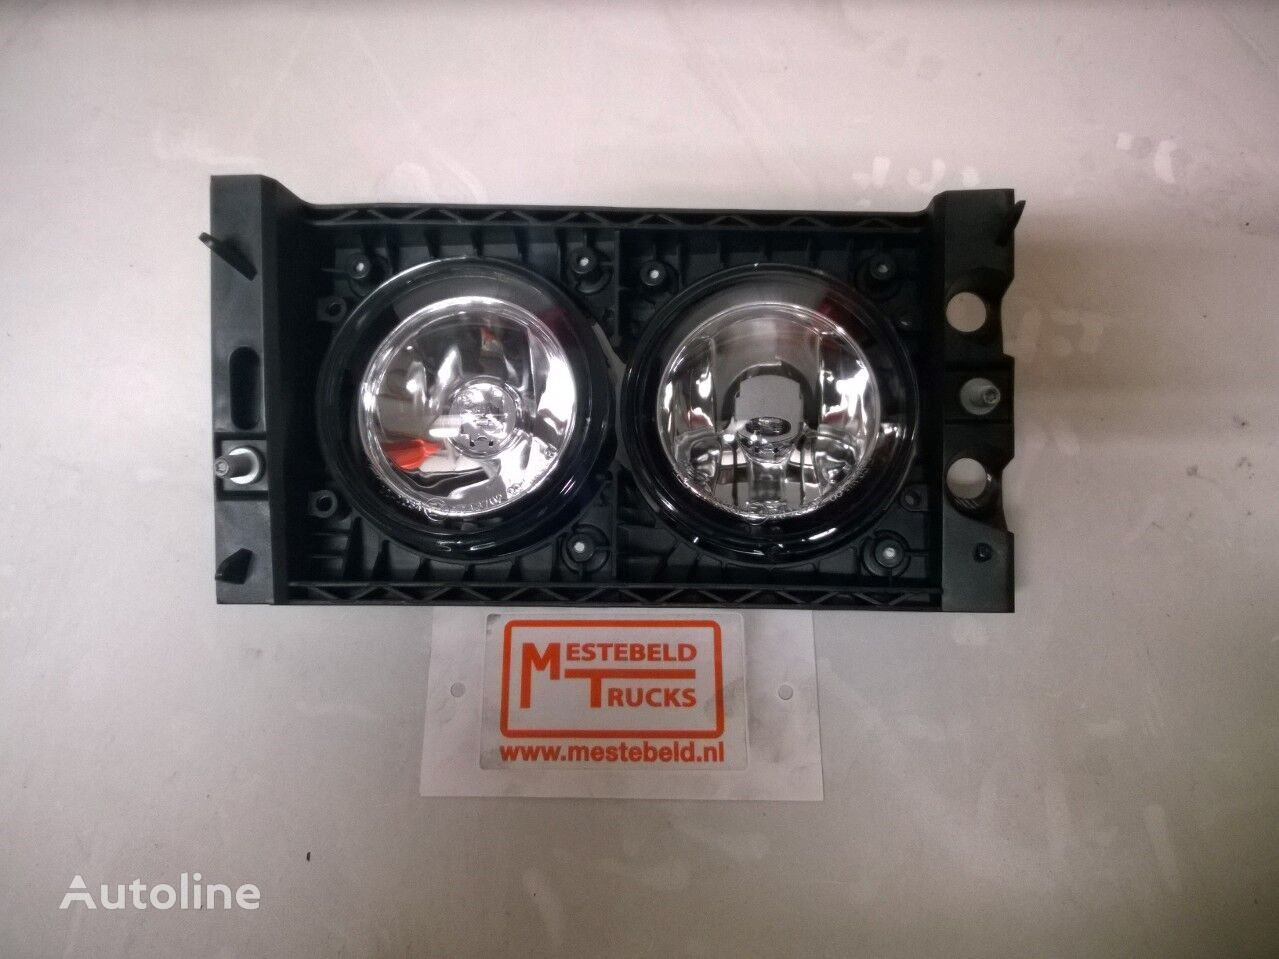 new DAF Combilamp (1725270) headlight for DAF Combilamp XF105 truck